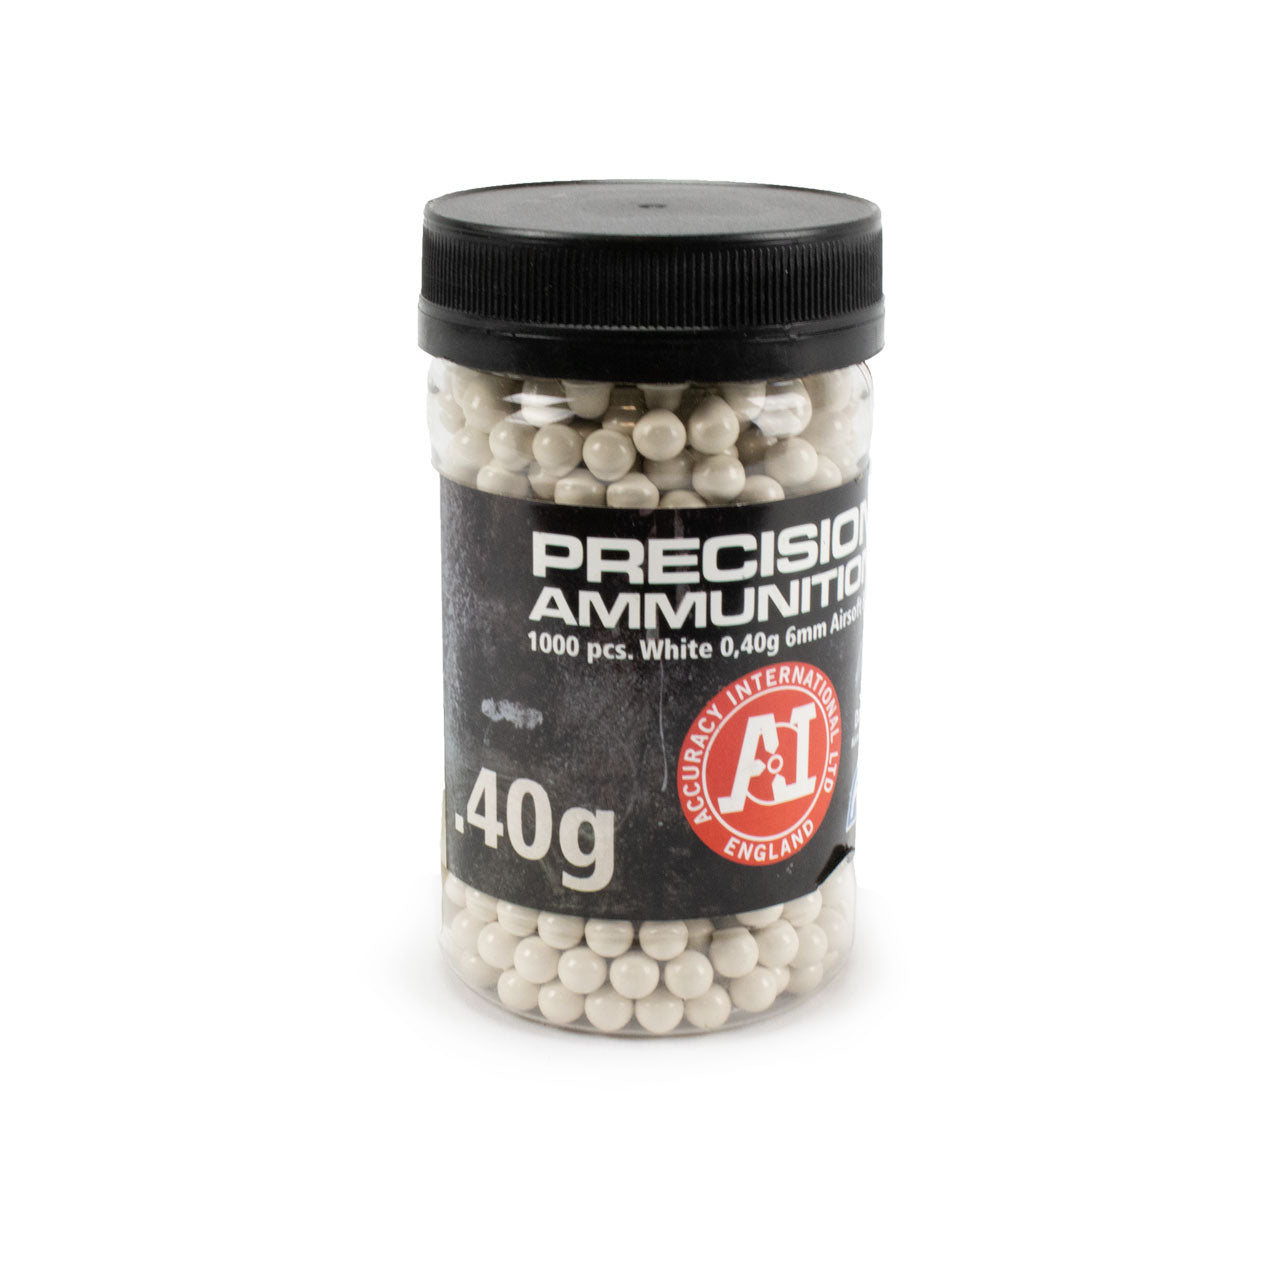 ASG Precision .40 6mm Airsoft BBs - White (1000 rounds)